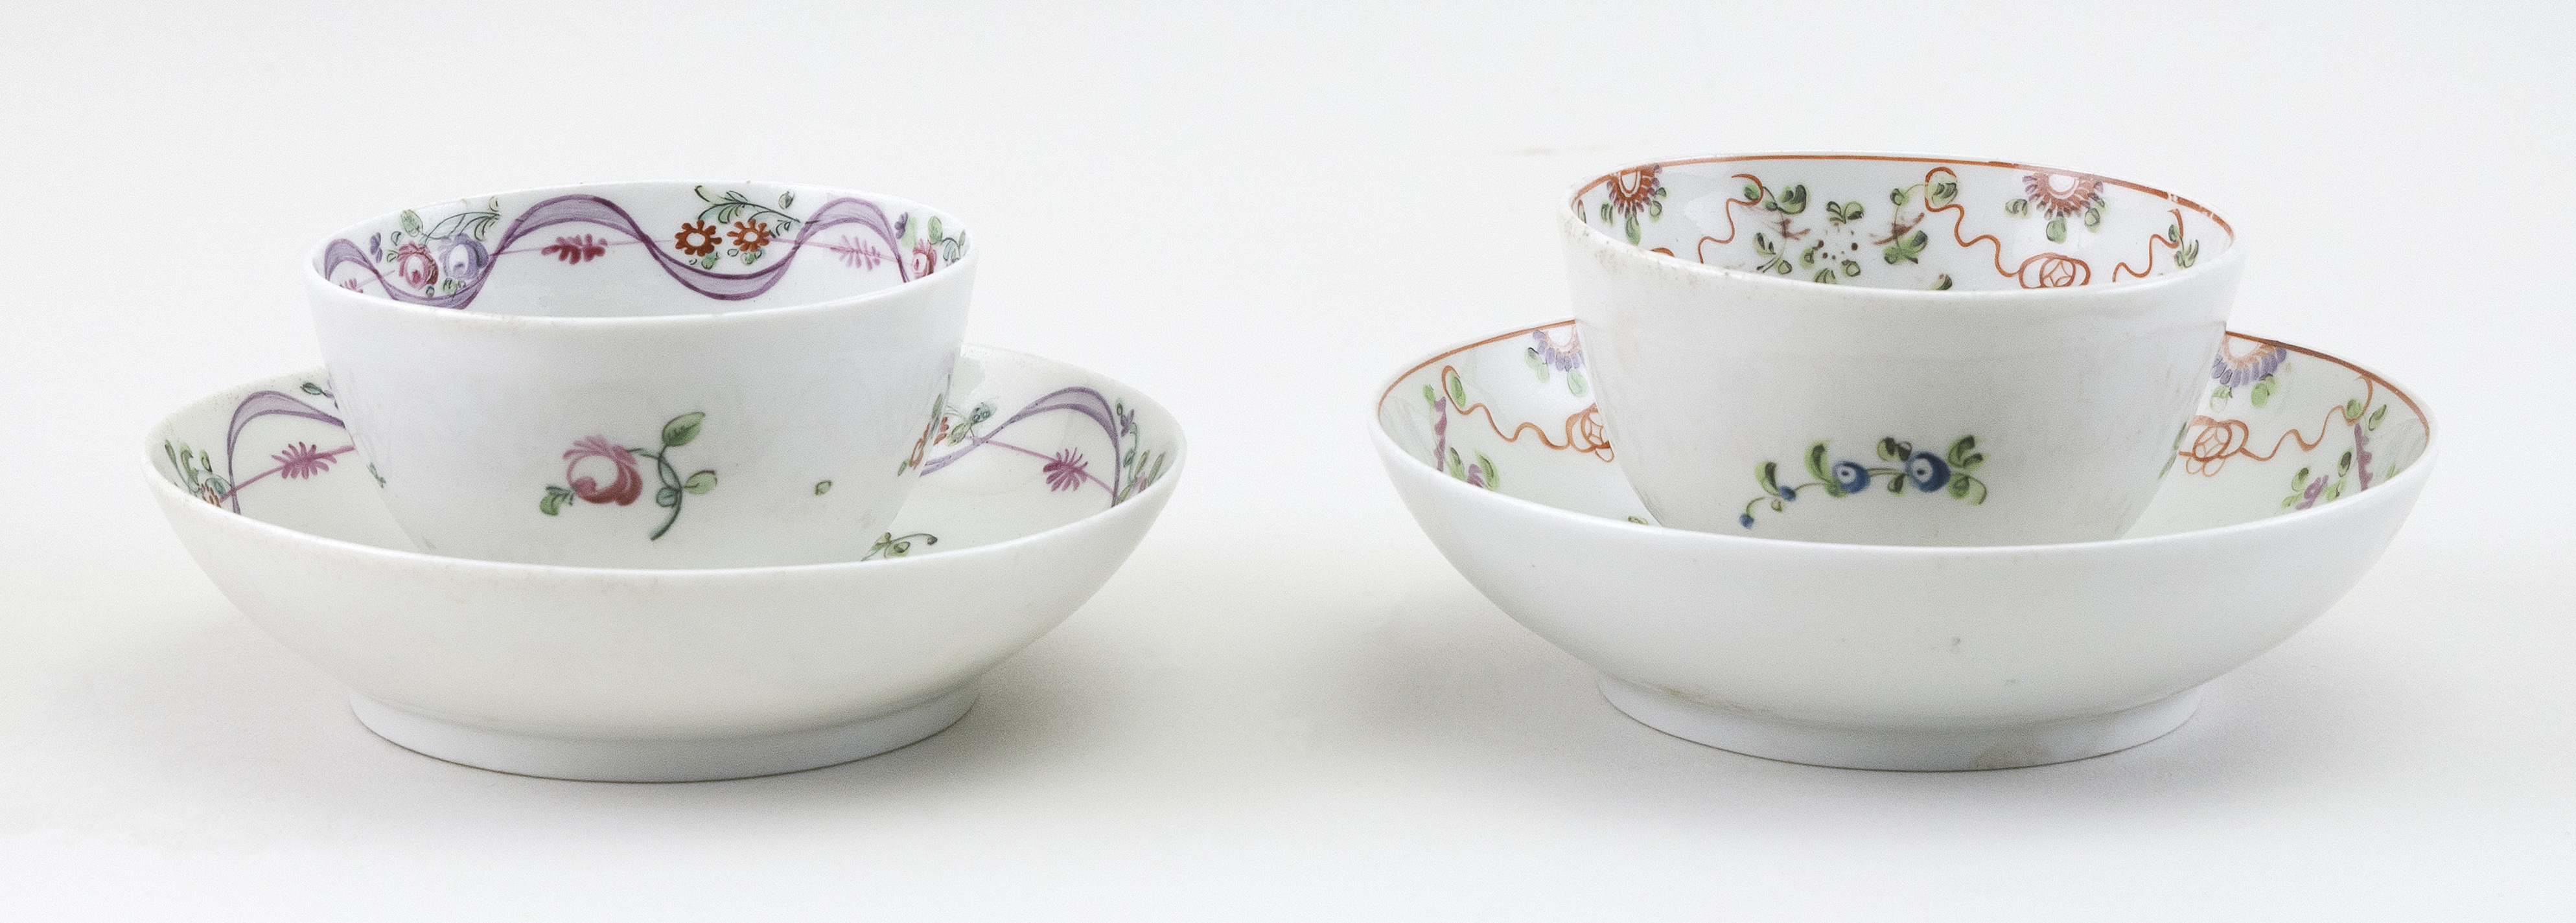 TWO PORCELAIN TEA BOWLS AND SAUCERS ATTRIBUTED TO BRISTOL Late 18th/Early 19th Century Saucer diameters 5